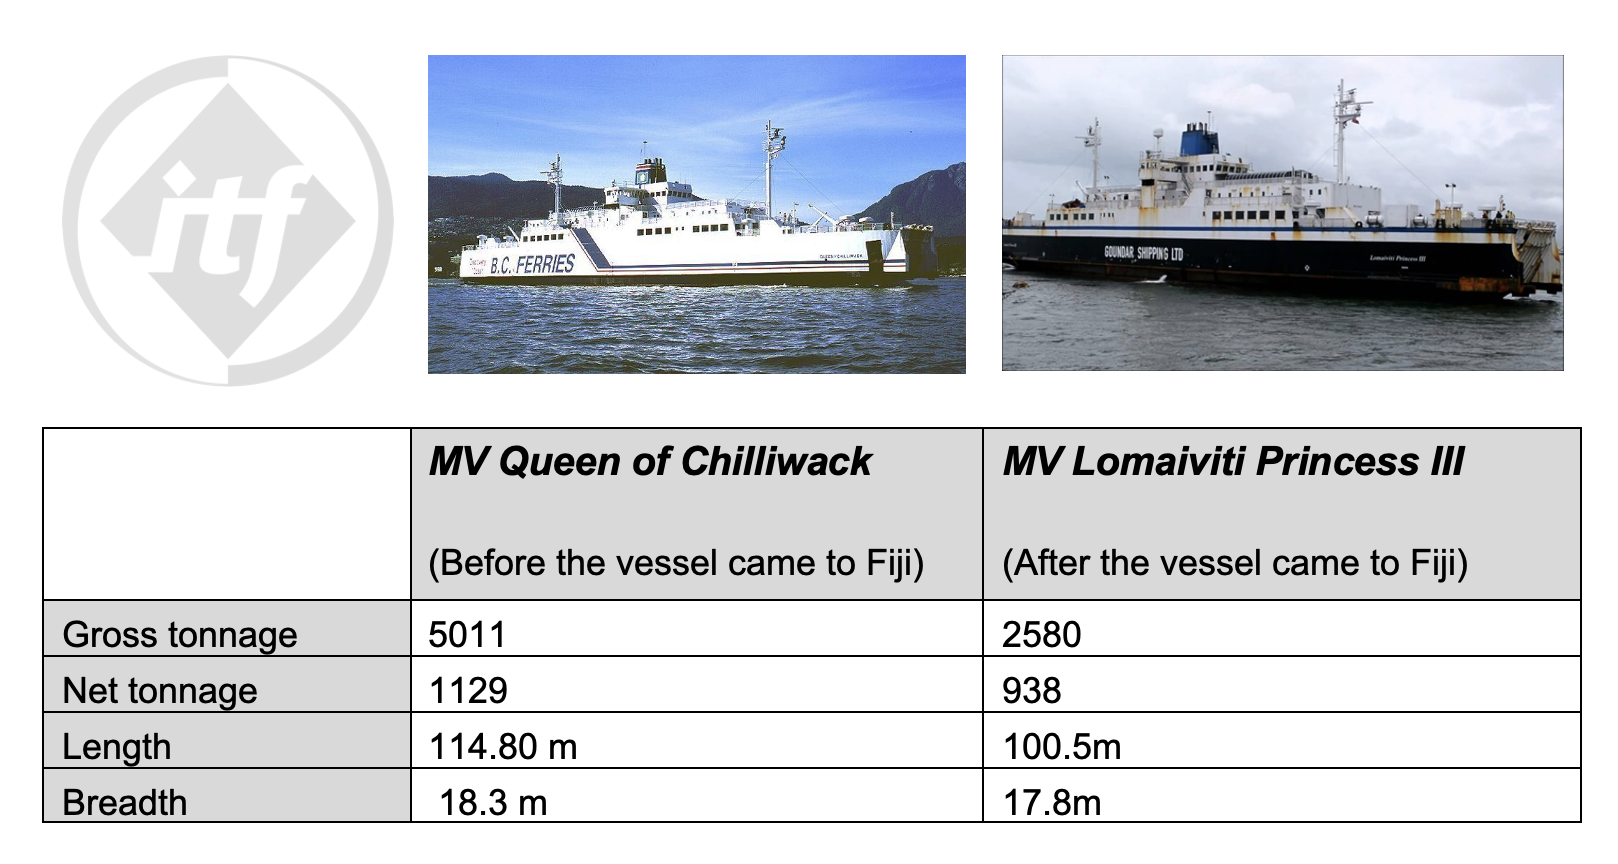 Comparison of MV Queen of Chilliwack and MV Lomaiviti Princess III - Credit ITF